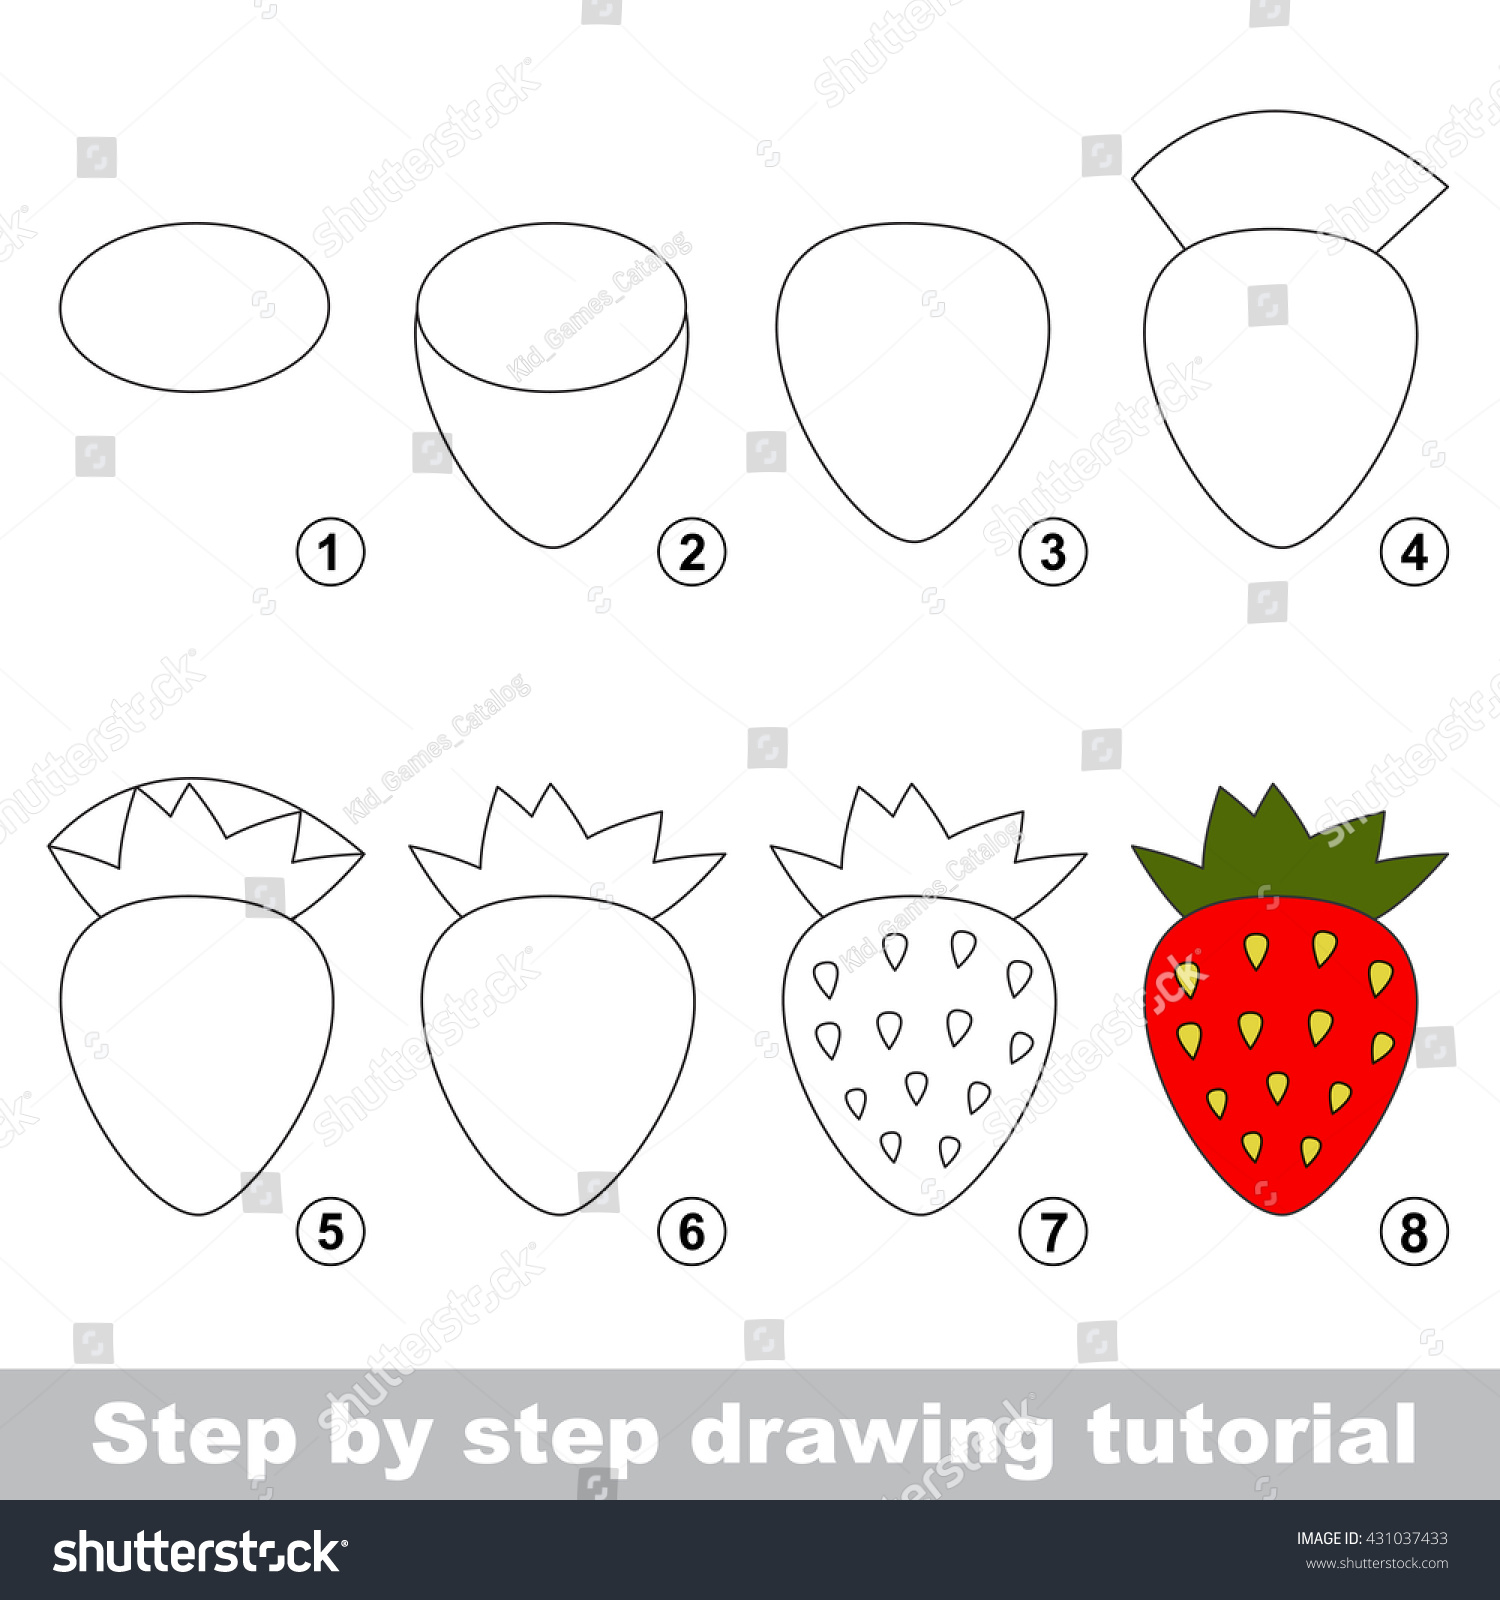 Uncategorized Drawing Of Strawberry drawing tutorial children easy educational kid stock vector for game simple level of difficulty kid